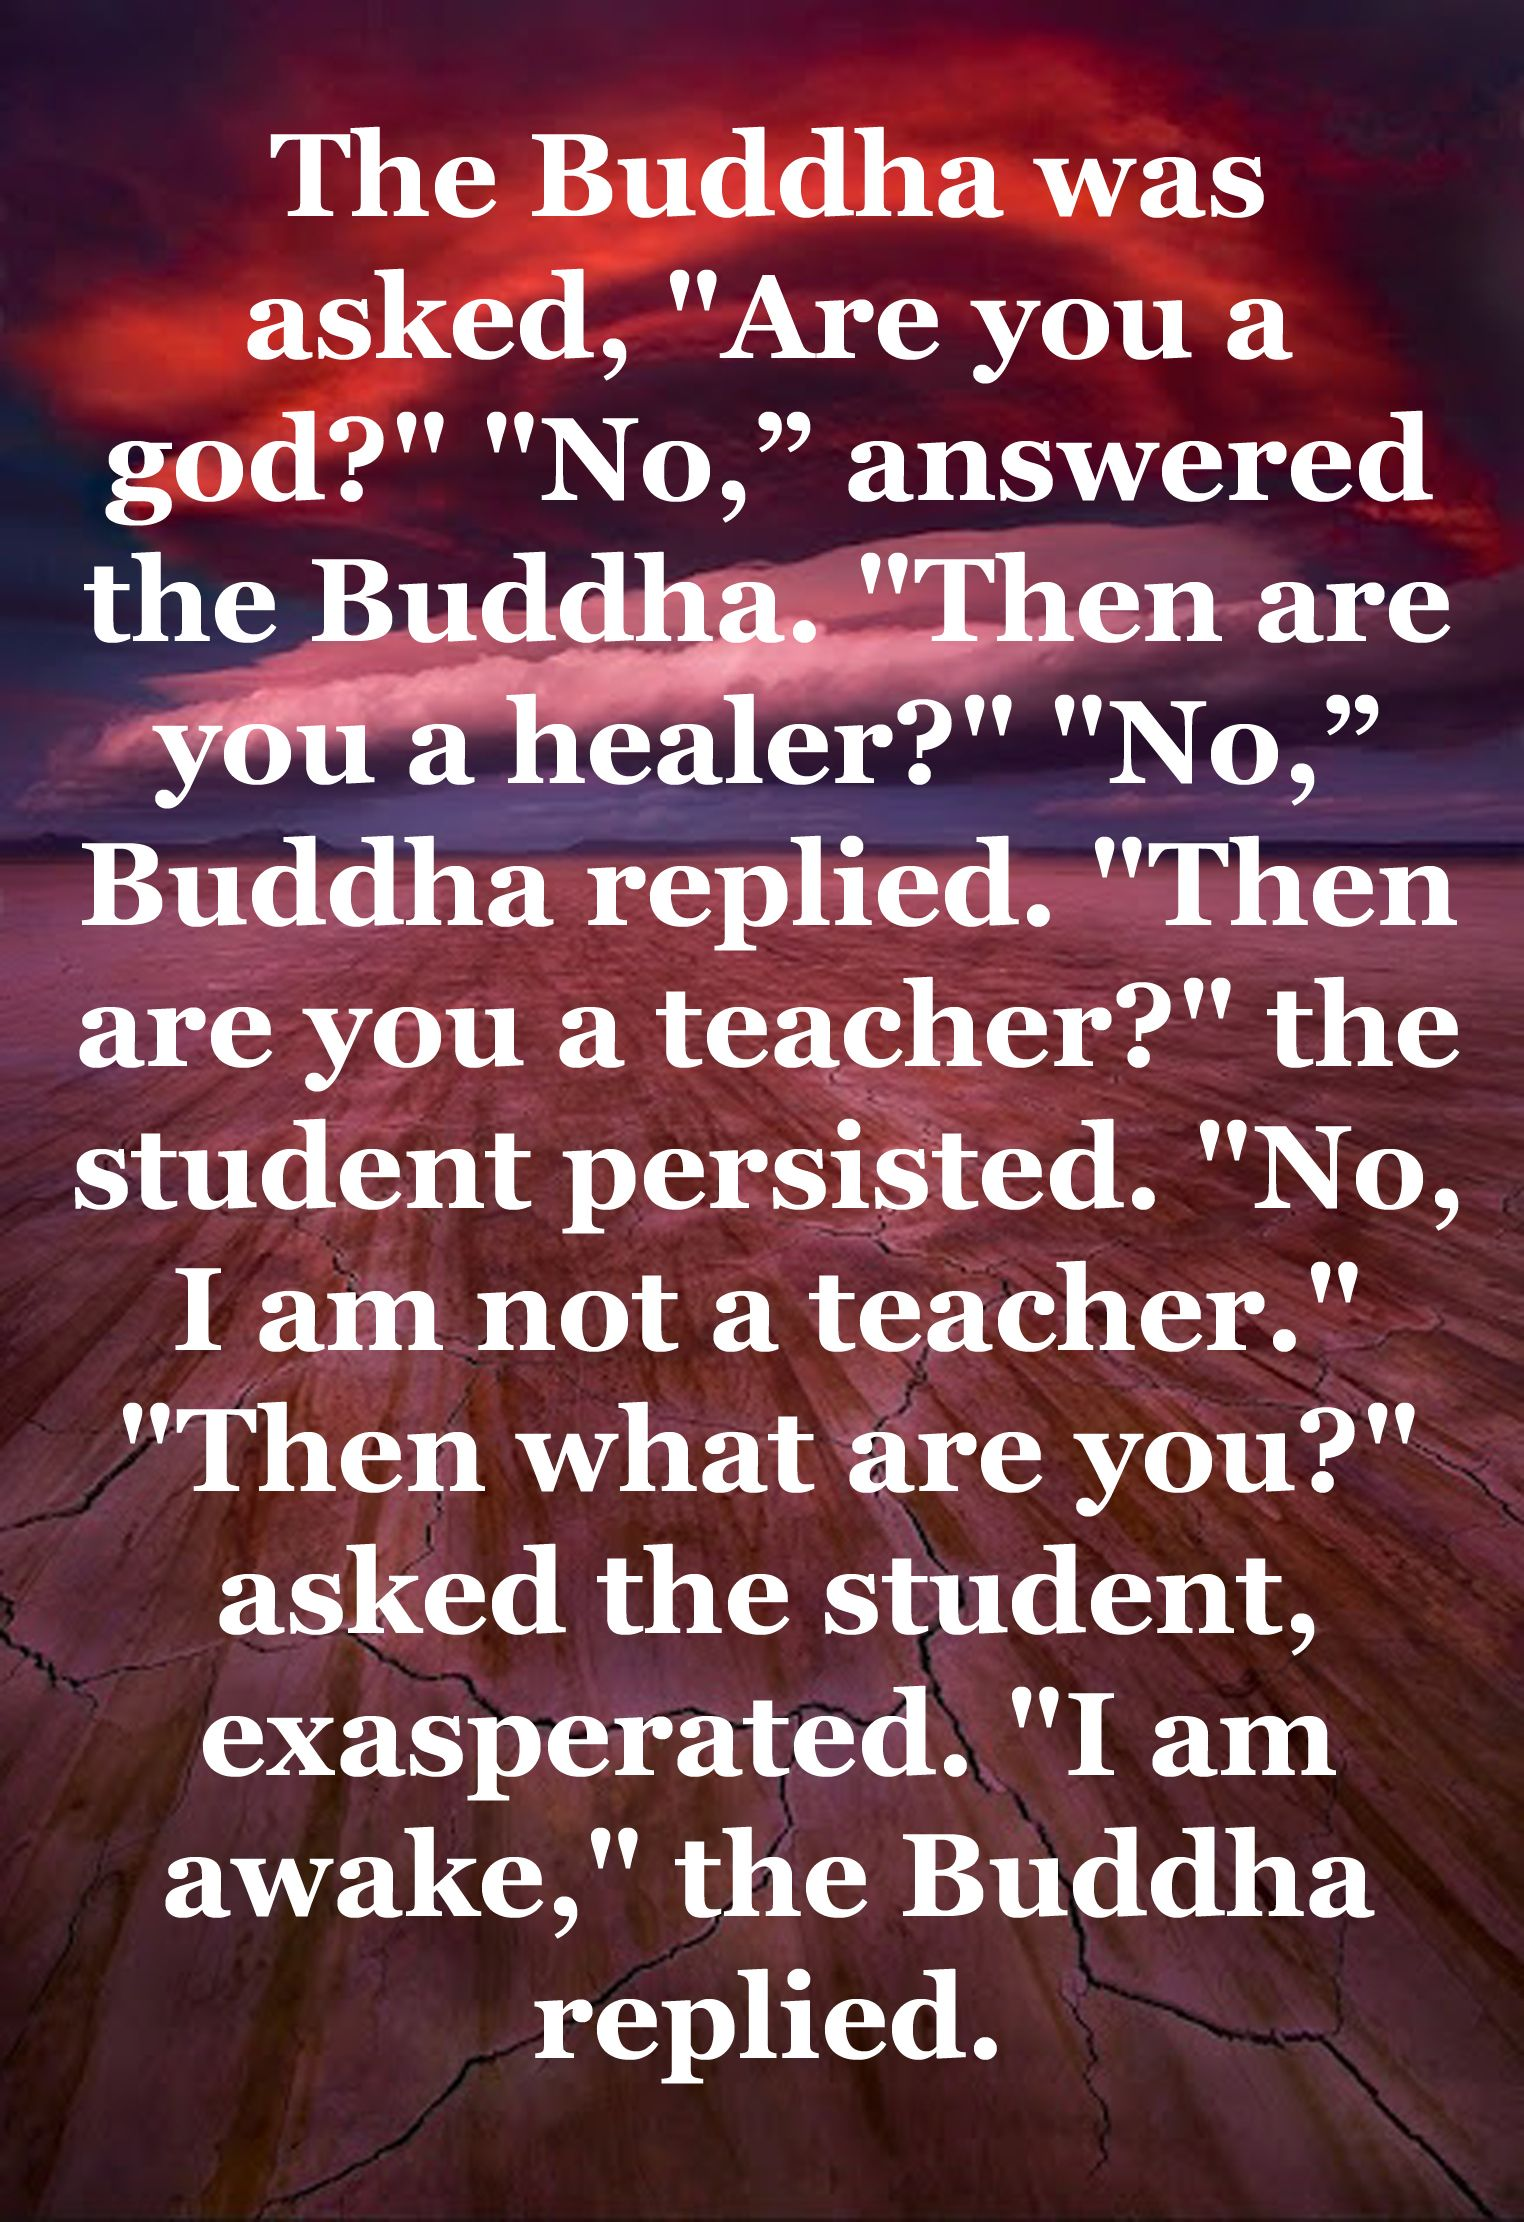 I Am Awake The Buddha Replied With Images Wisdom Thoughts